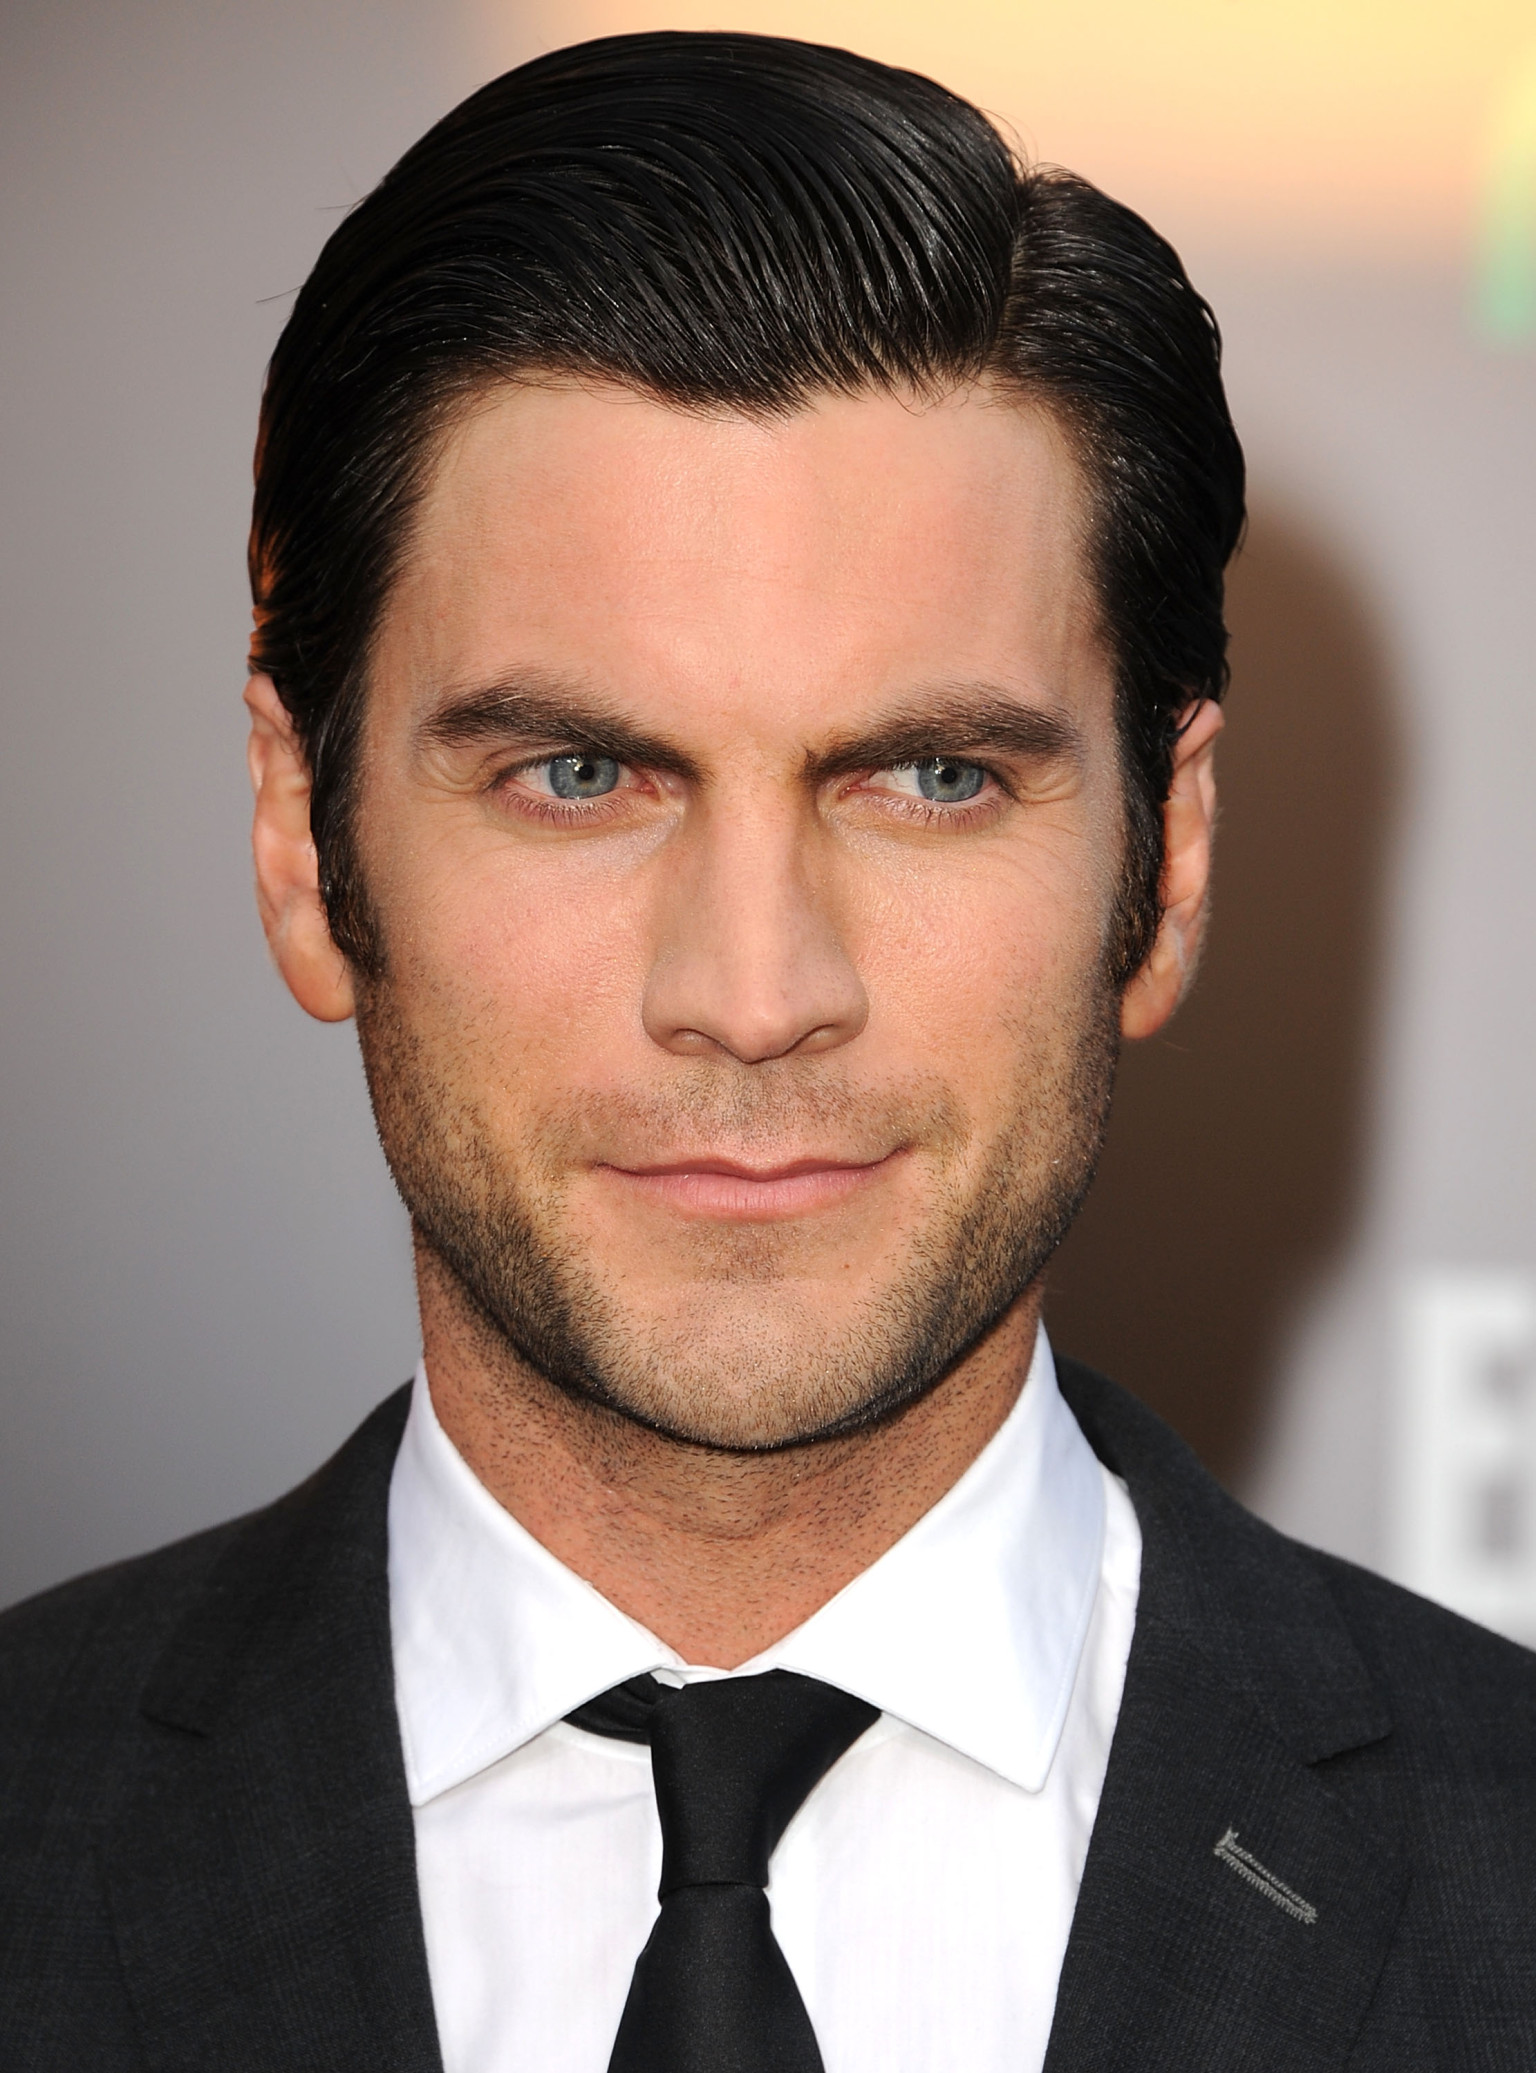 The 39-year old son of father David Bentley and mother  Cherie Baker, 180 cm tall Wes Bentley in 2018 photo